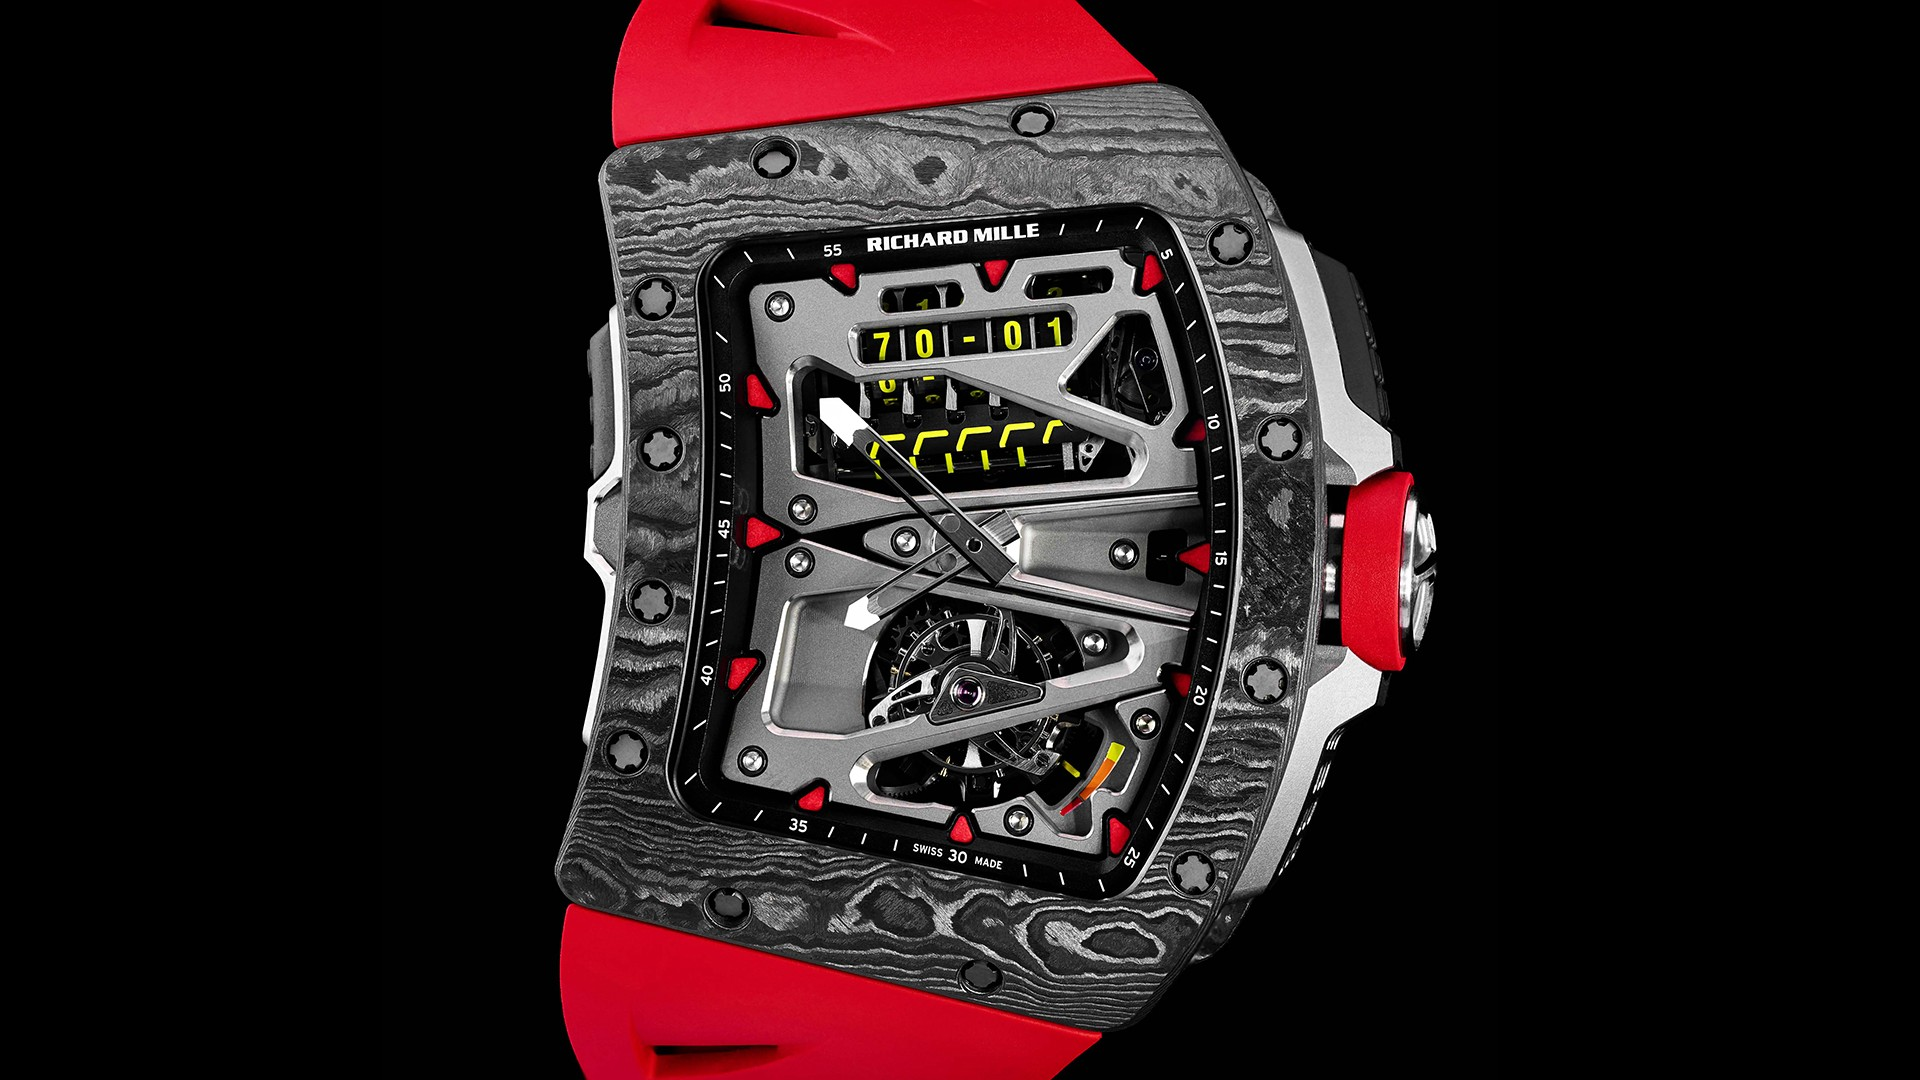 Richard Mille Cycling Watch